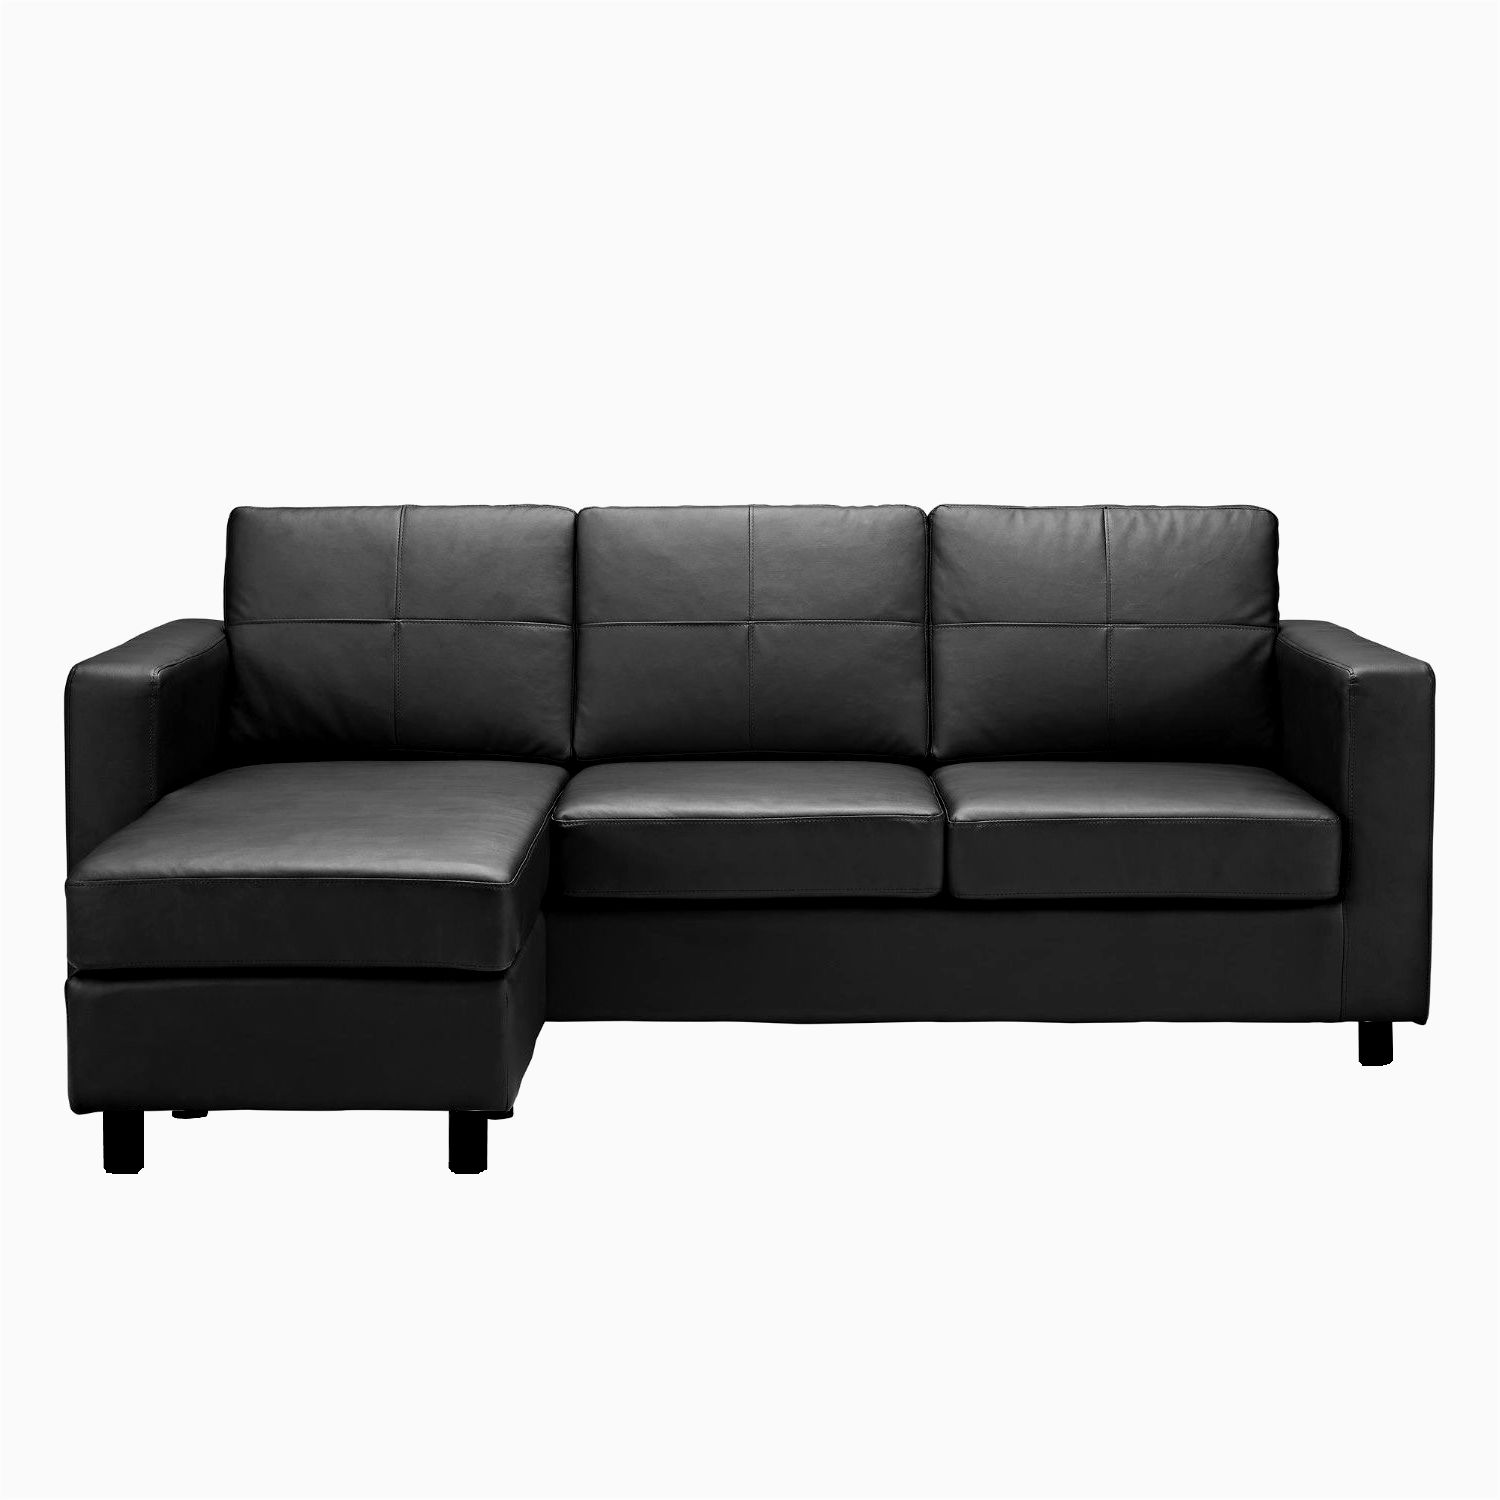 lovely down sectional sofa photo-Best Of Down Sectional sofa Décor